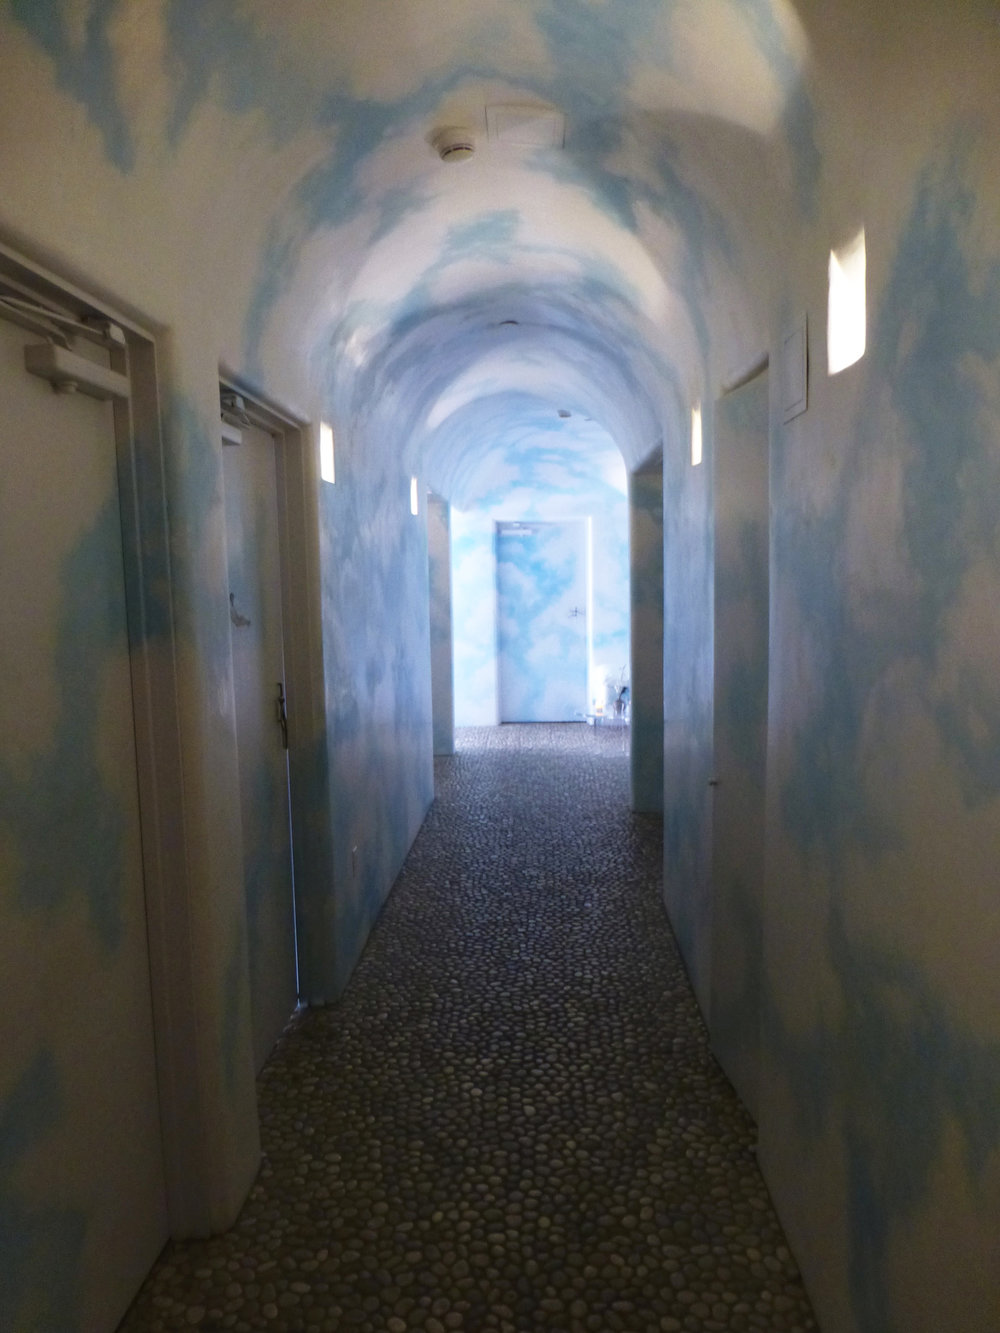 Spa interior painted with clouds